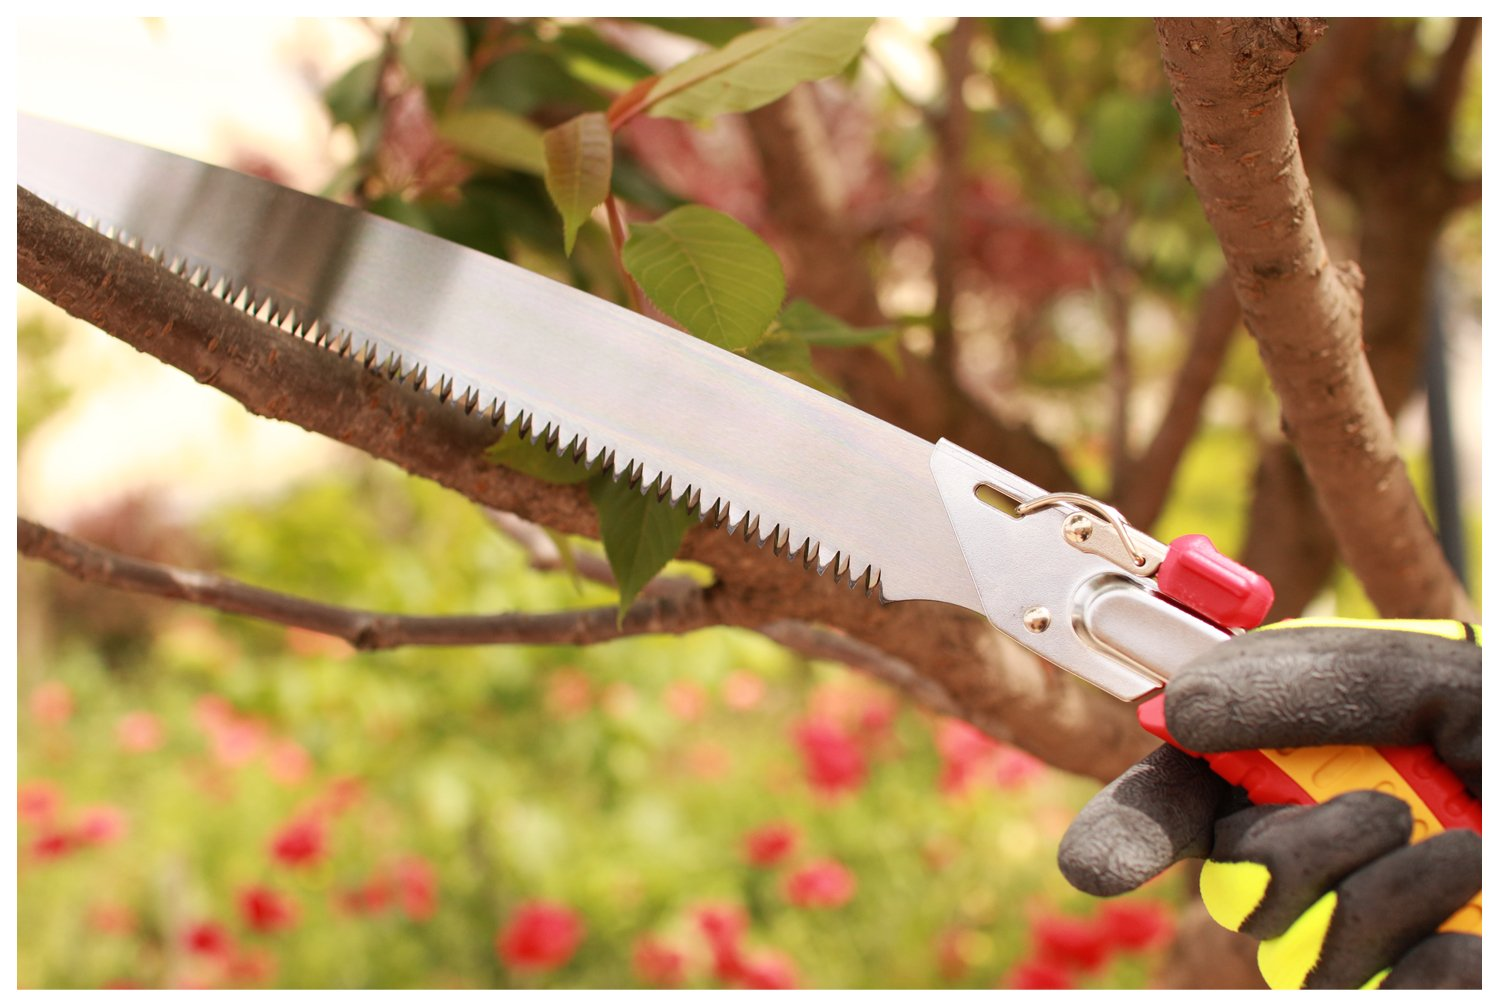 Geelife Landscaping Hand Pruning Saw Rugged Razor Blade Hand Saw with Sheath Professional Pruning Saws Garden Tool for Trim Tree Branches